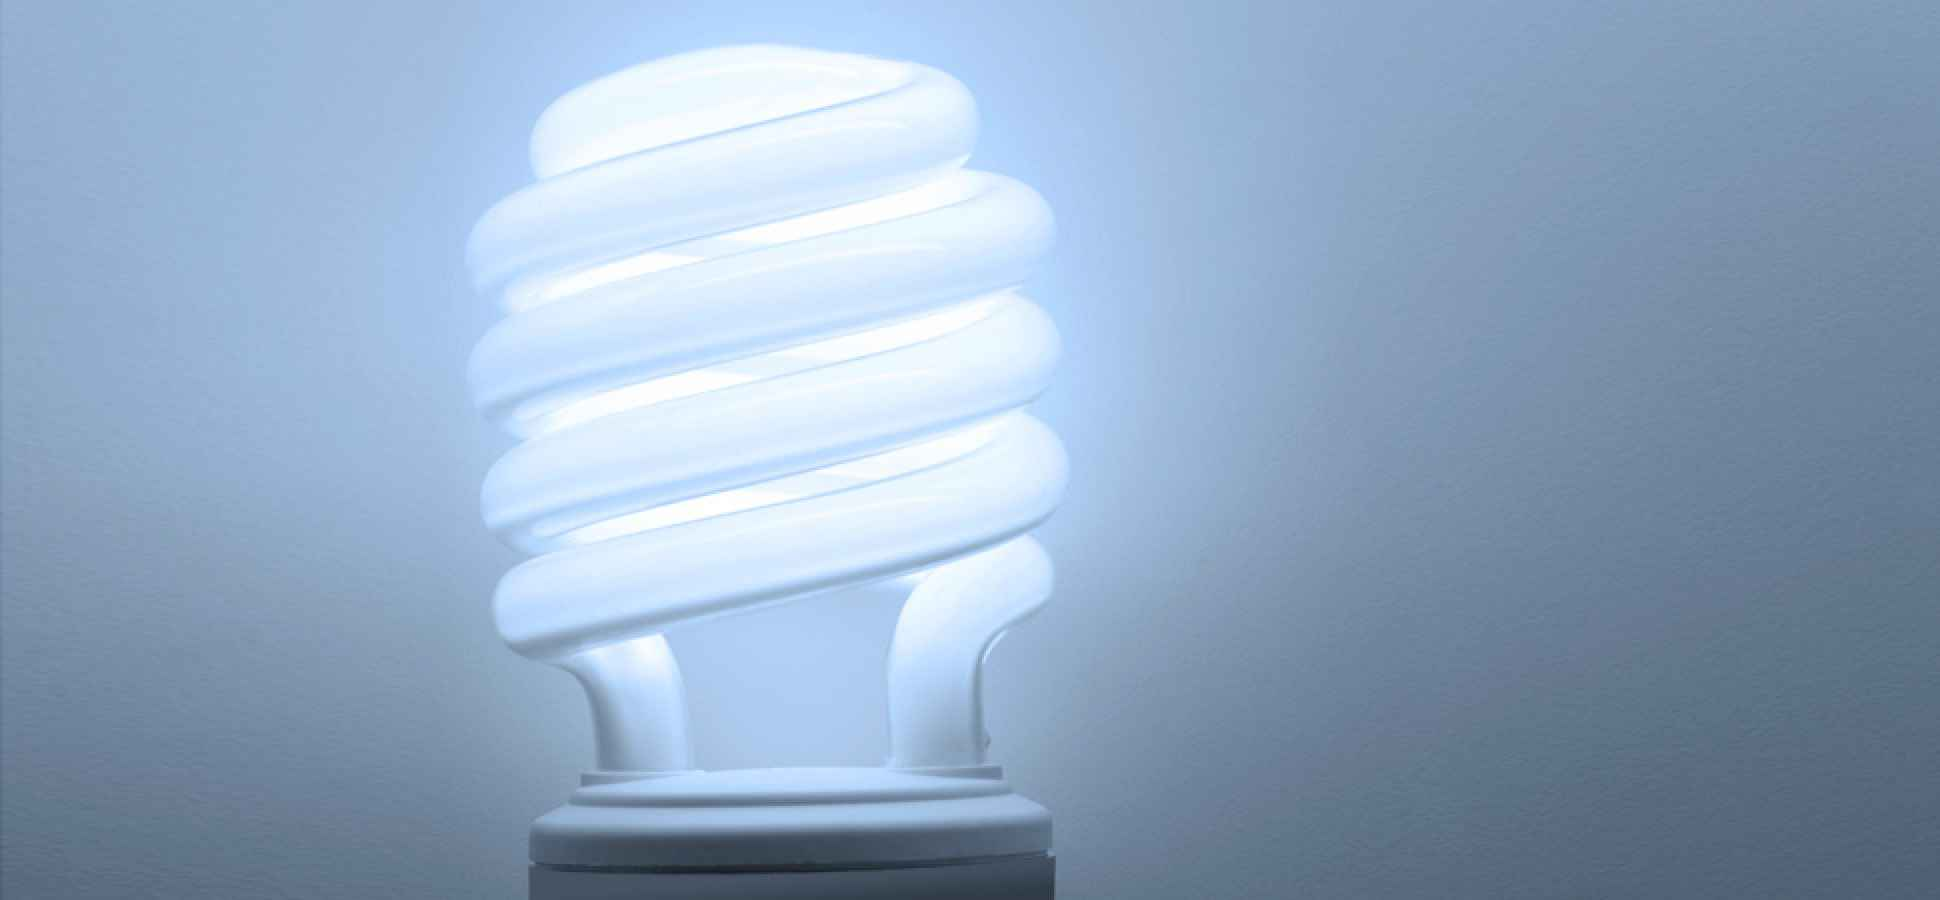 3 Unexpected Design Lessons From the Compact Fluorescent Light Bulb